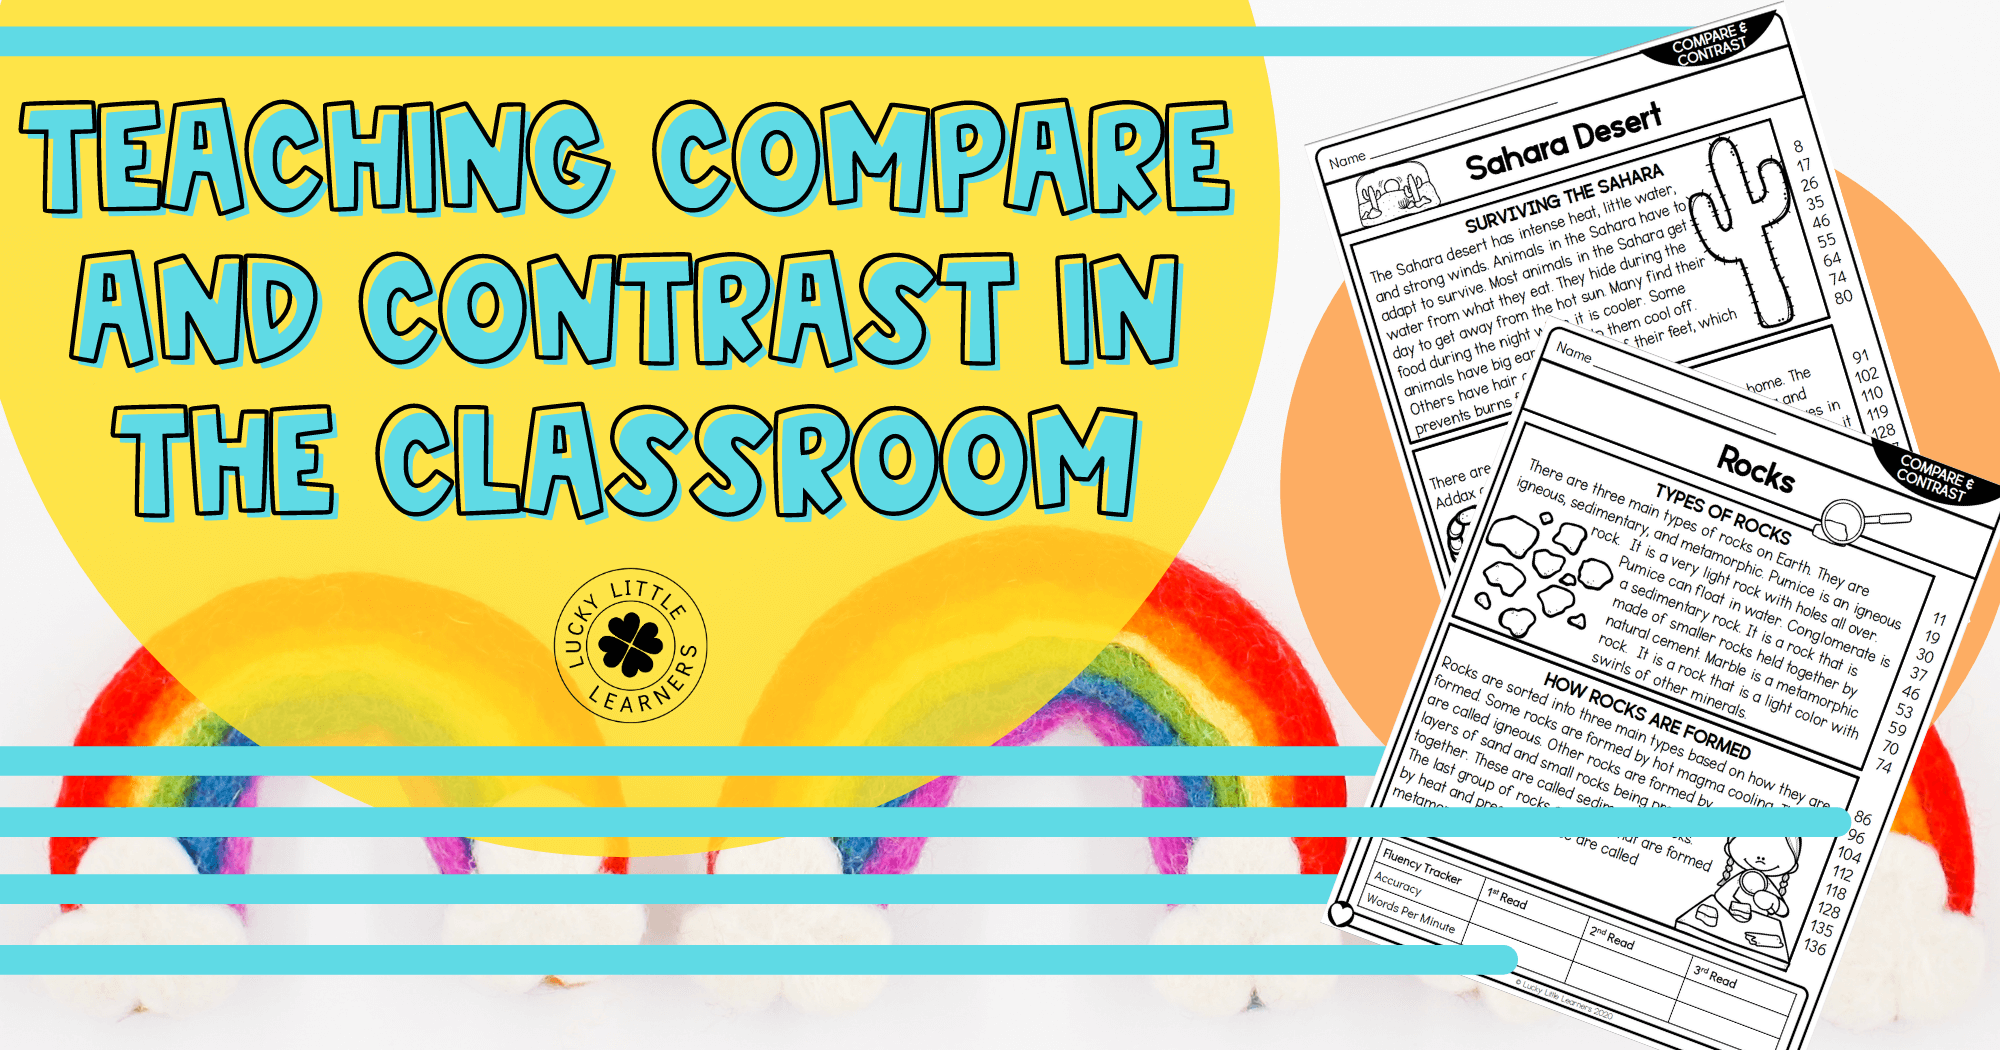 Teaching Compare and Contrast in the Classroom